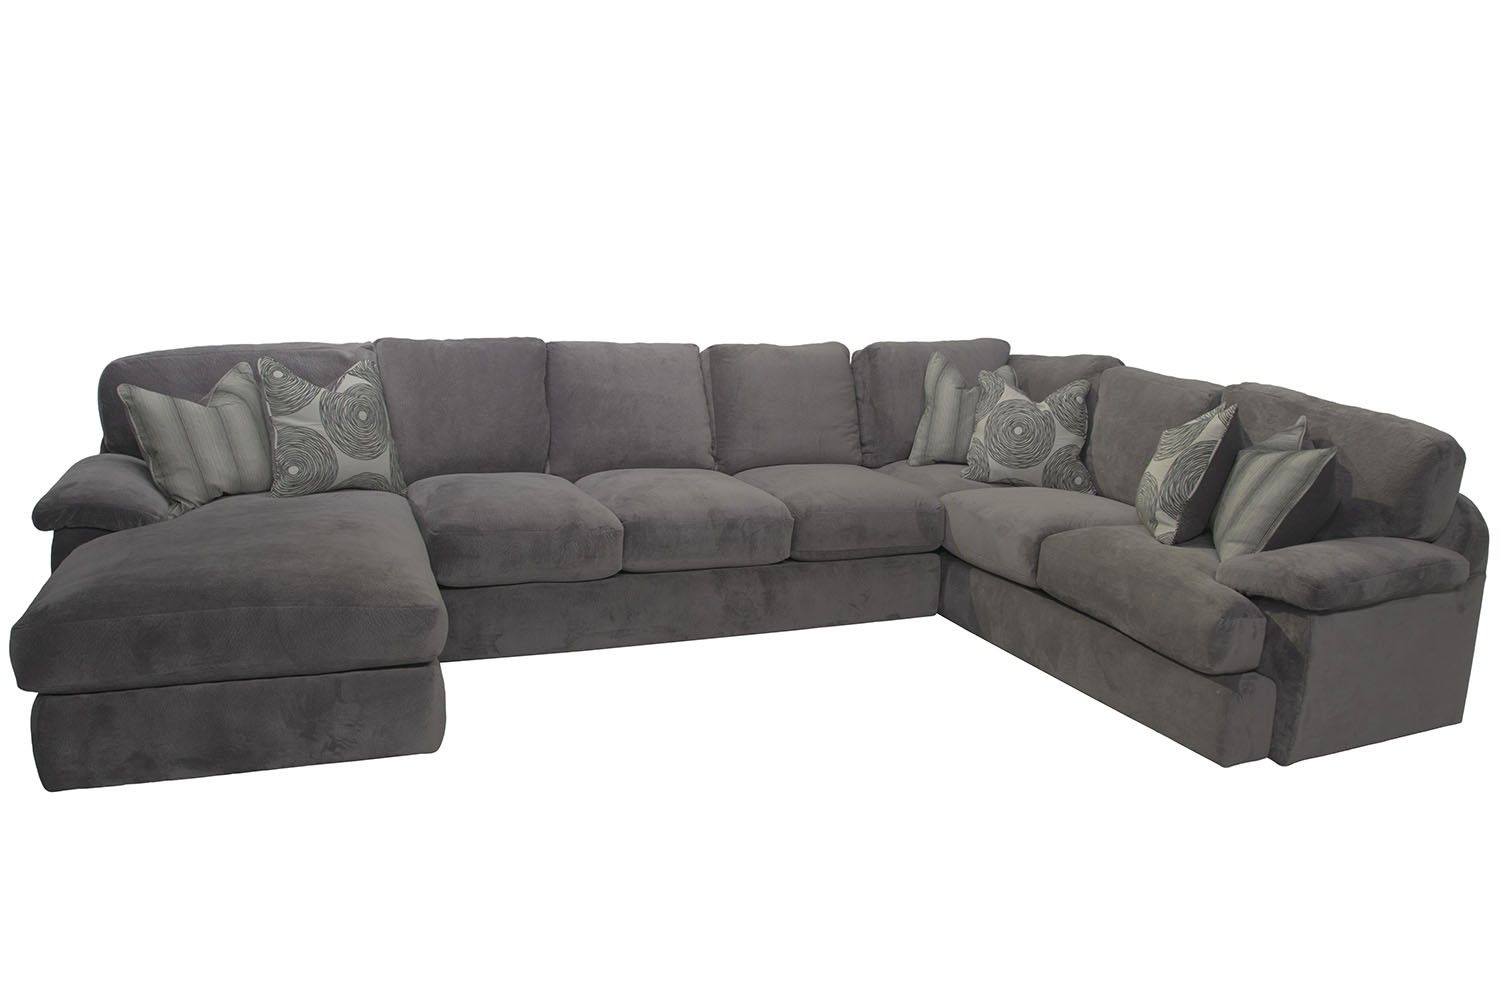 Beau Mor Furniture For Less: Key West Right Facing Sofa Tux Sectional In Gray | Mor  Furniture For Less